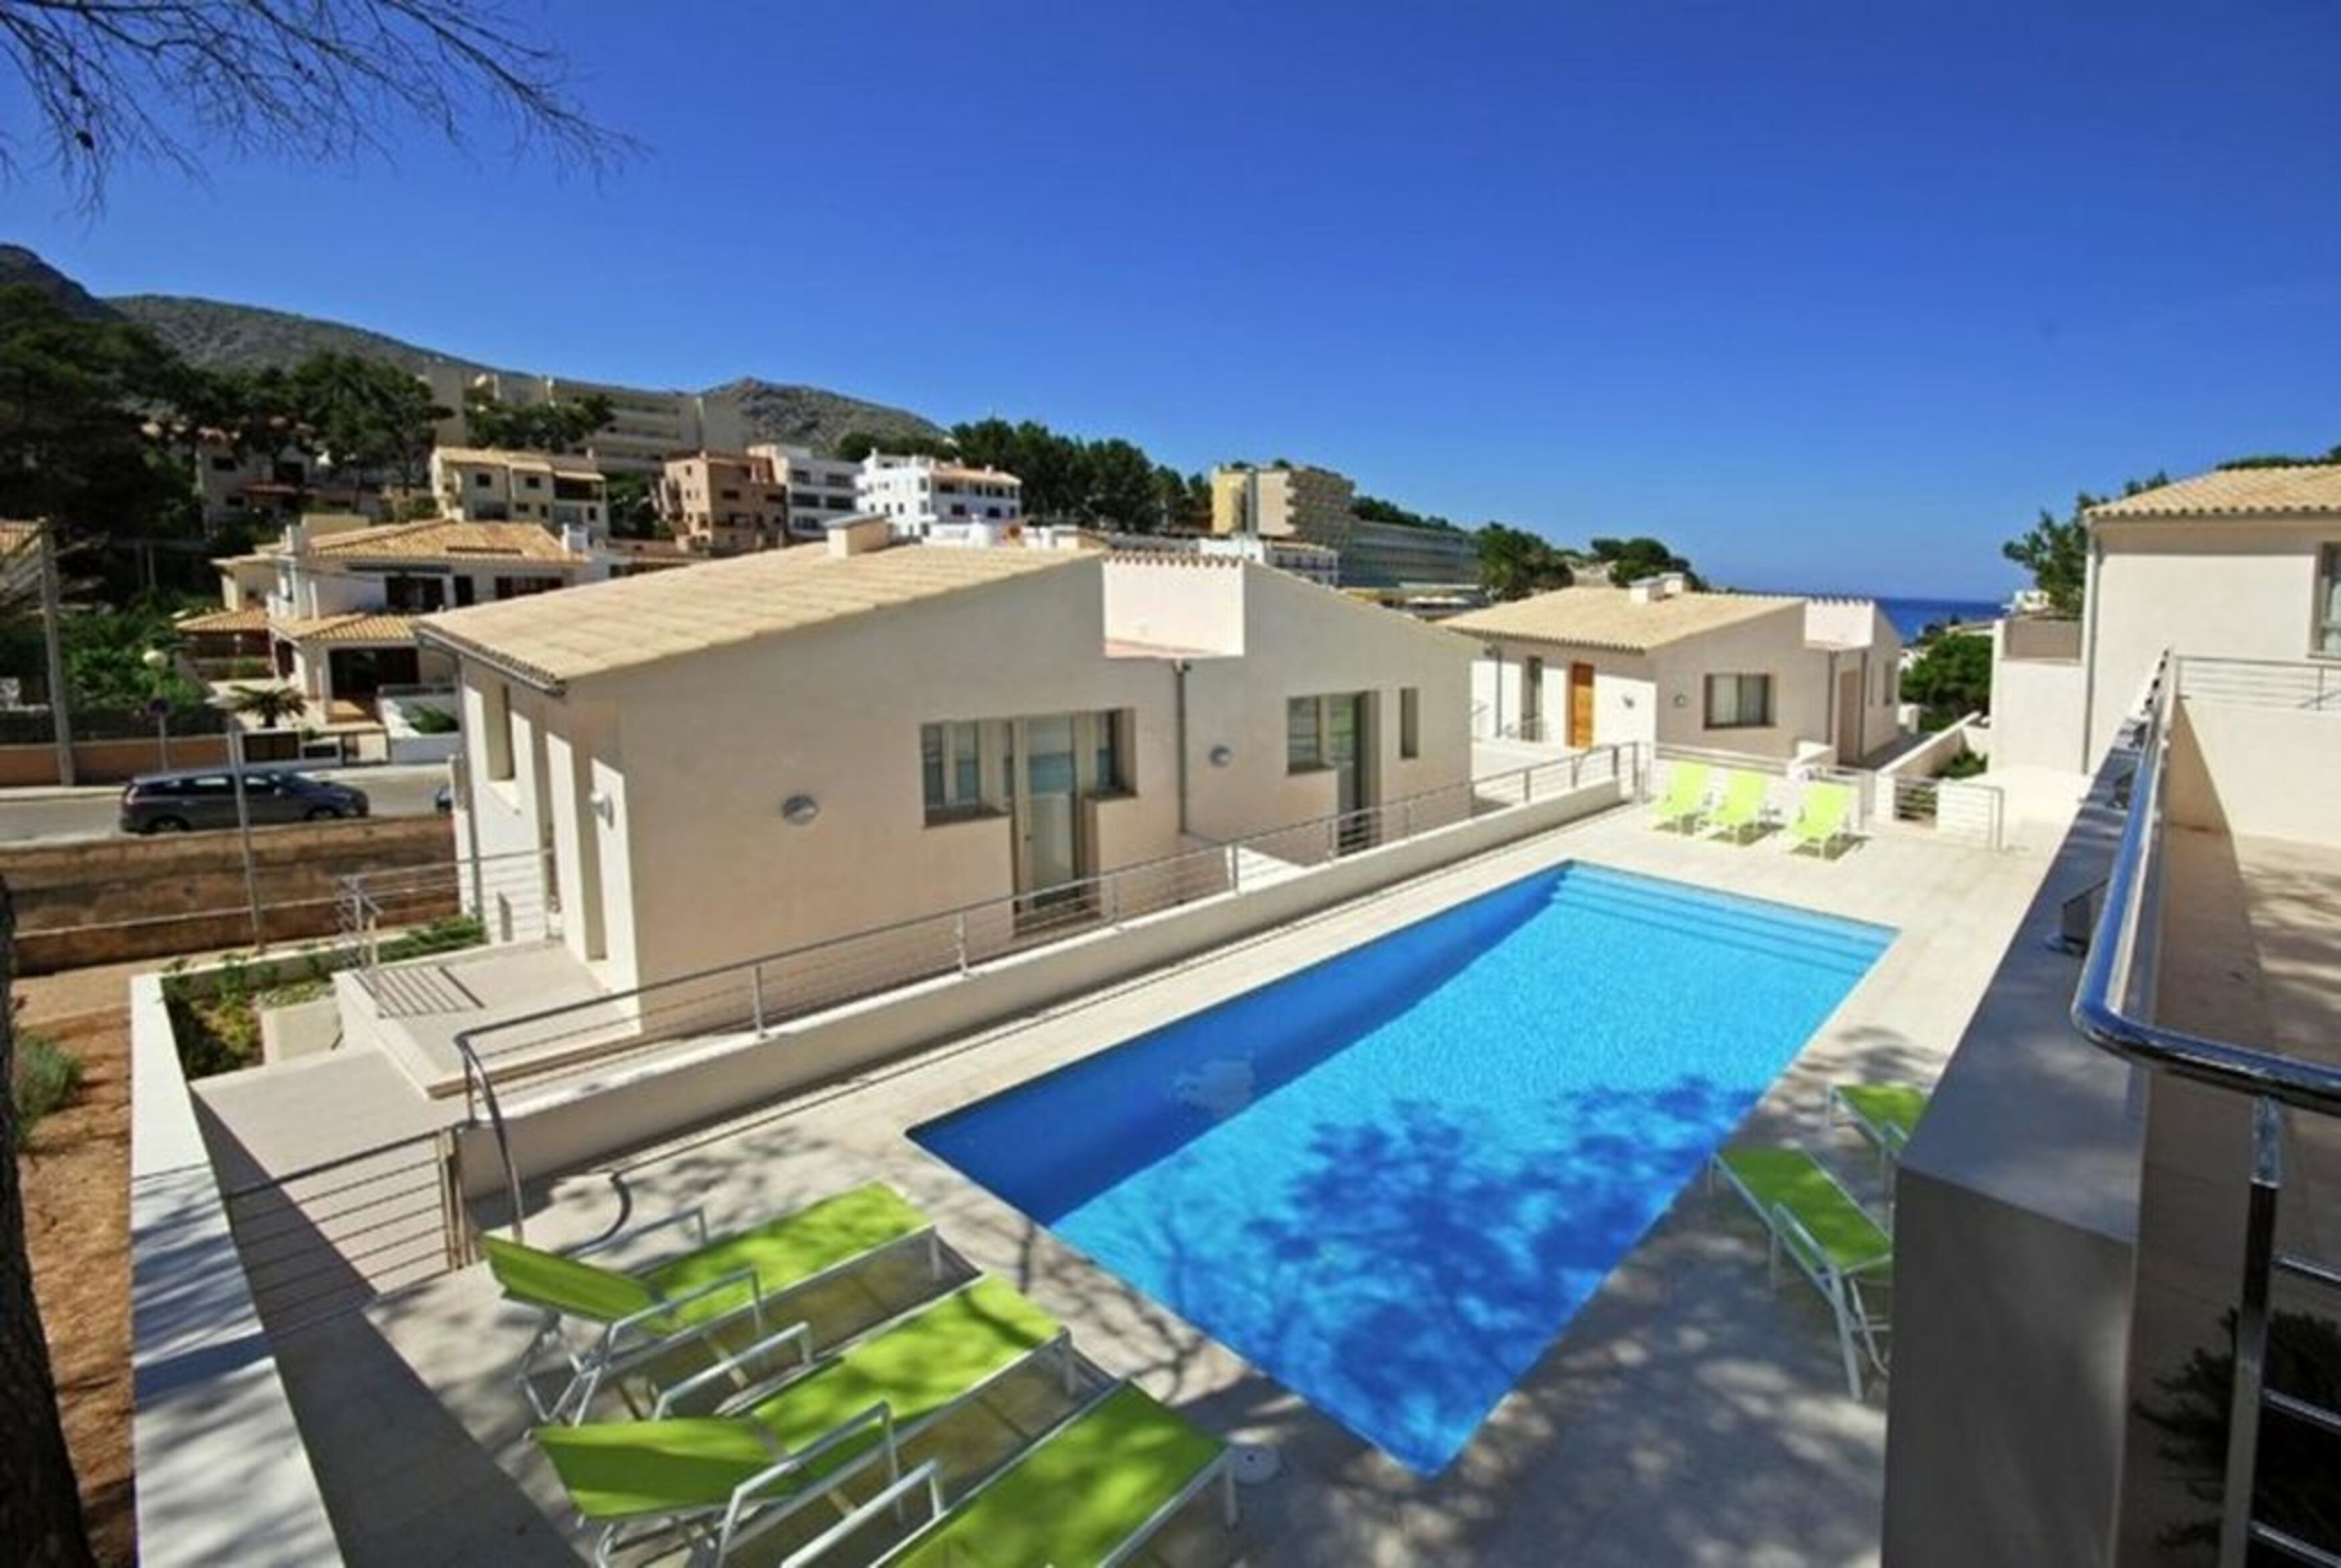 Apartment 3 Bedrooms with Pool WiFi and Sea views 108324